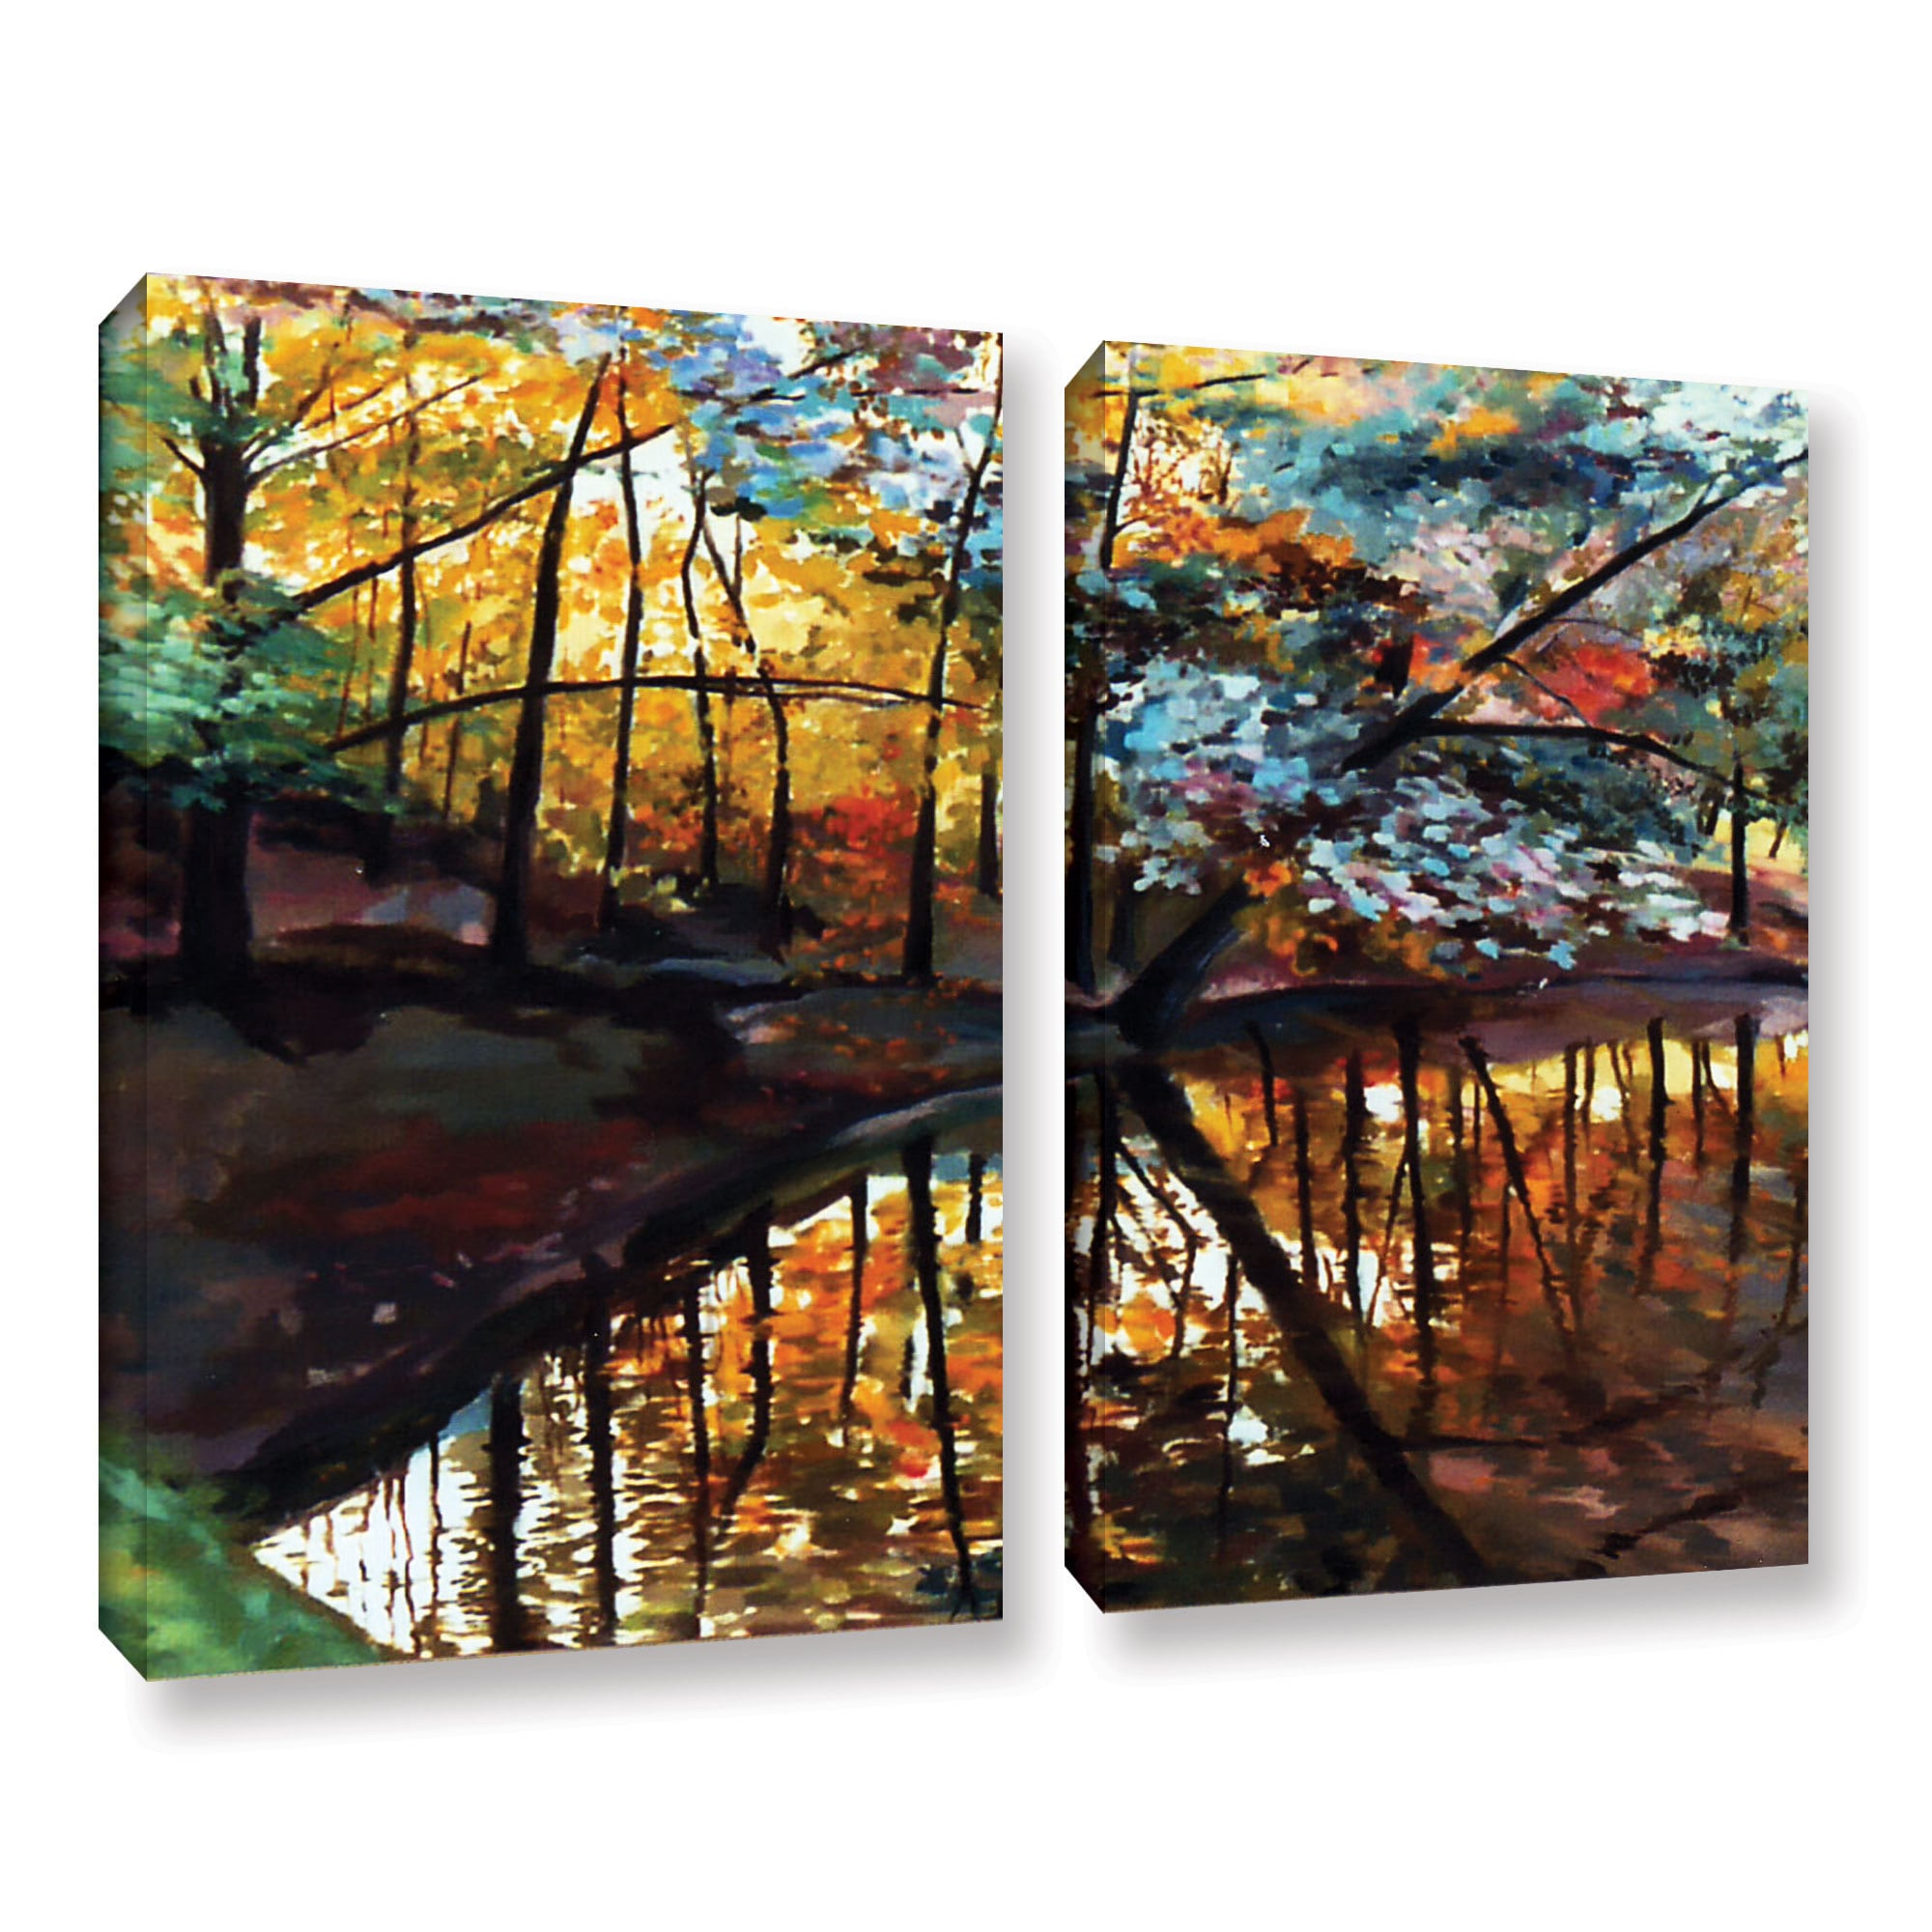 Details about ArtWall Sylvia Shirilla's Elysium, 2 Piece Gallery Wrapped  Canvas Set